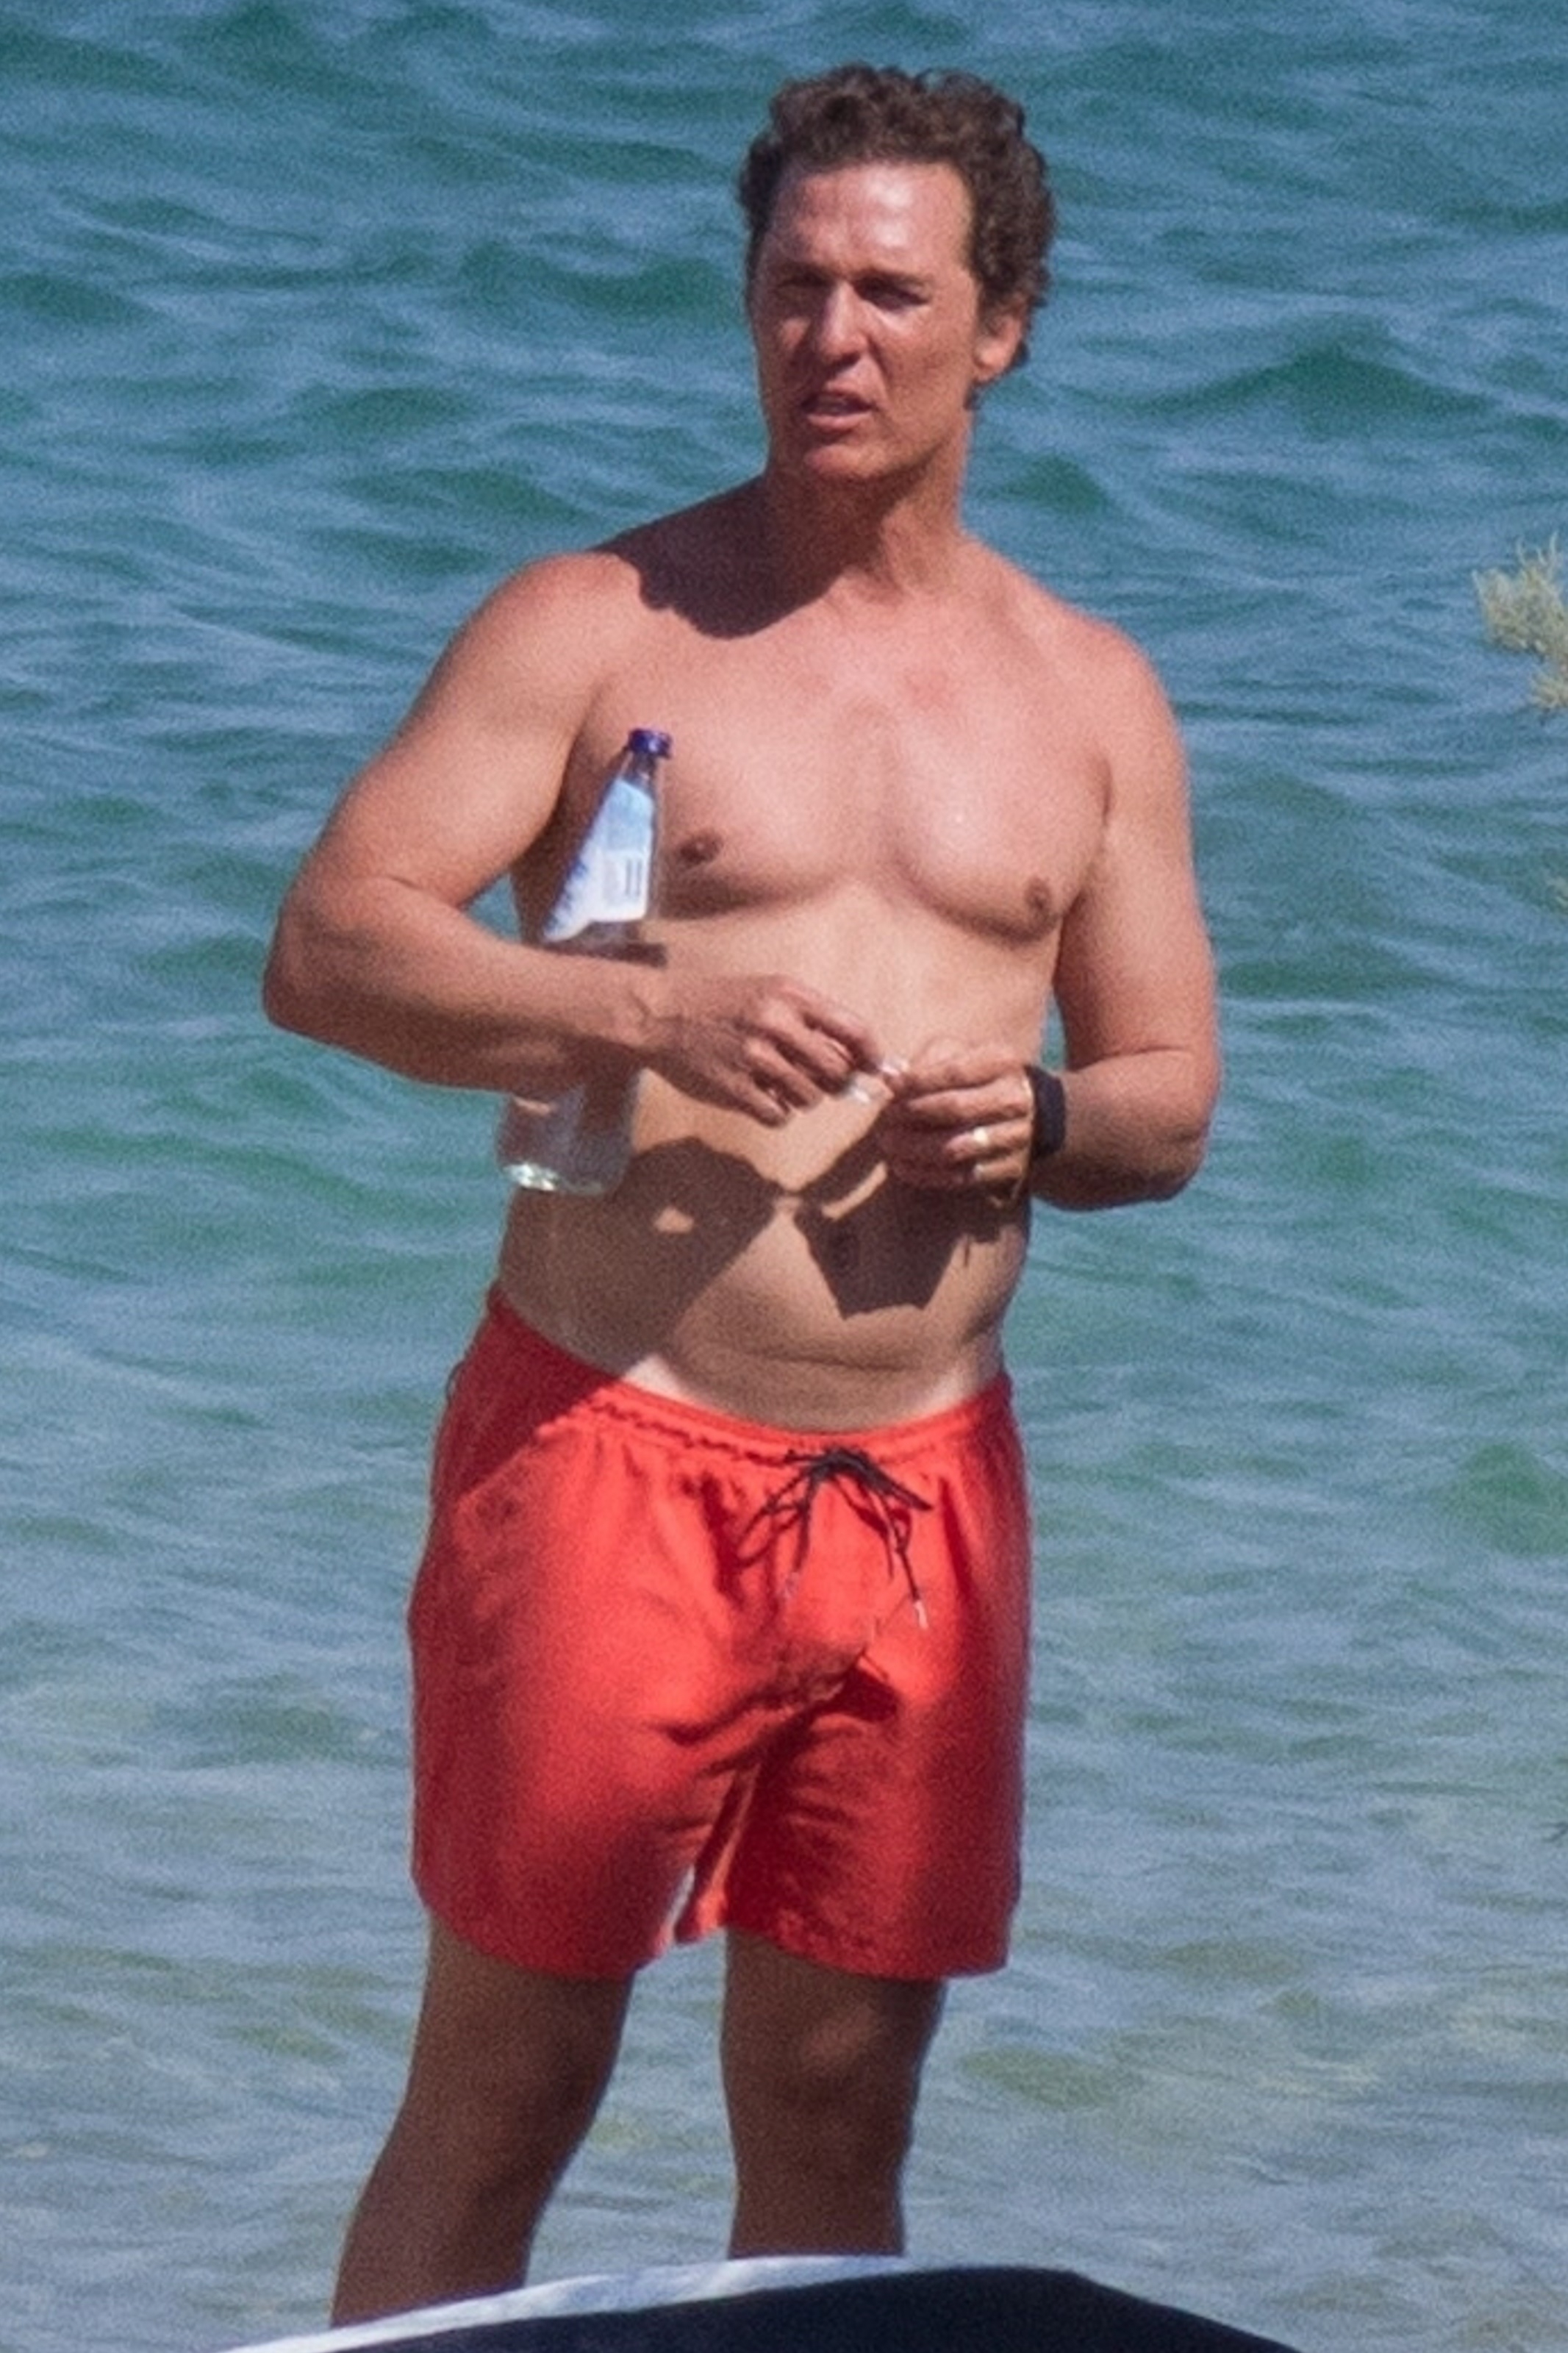 Matthew McConaughey showed off his hot body while vacationing on the Greek Island of Antiparos on June 28, 2019.